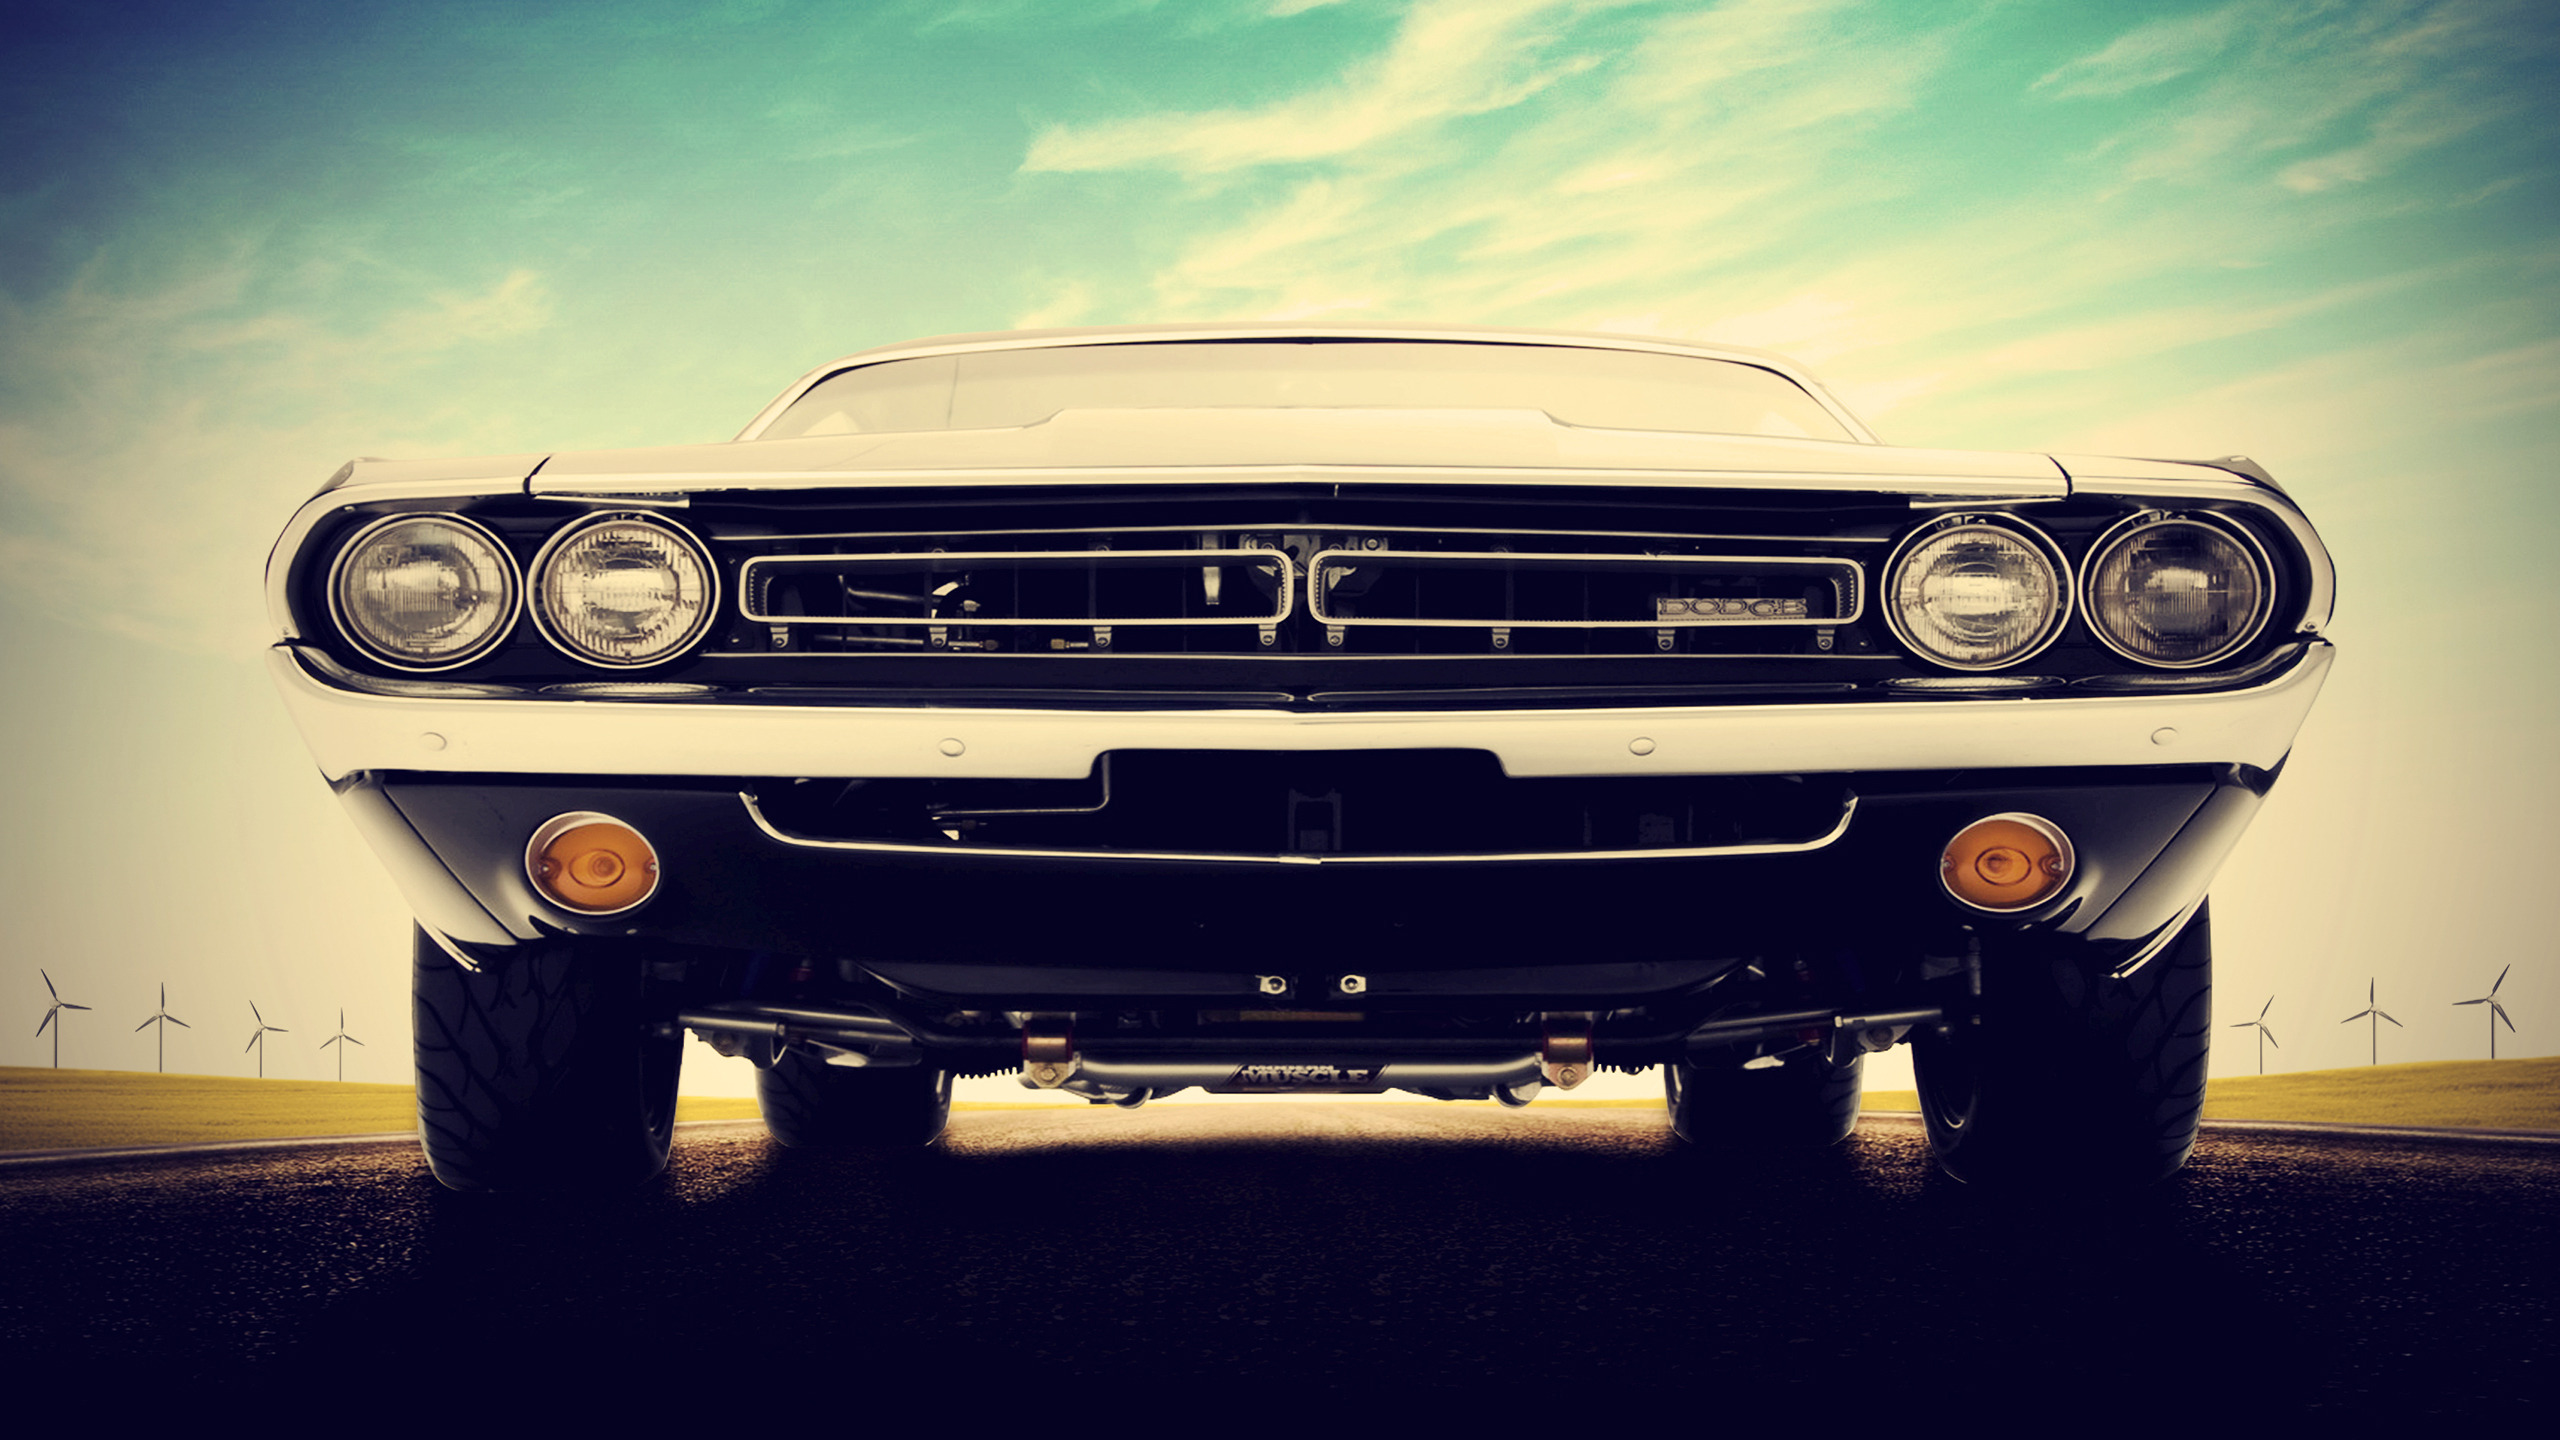 Dodge challenger hd wallpaper background image - Muscle cars wallpaper hd pack ...